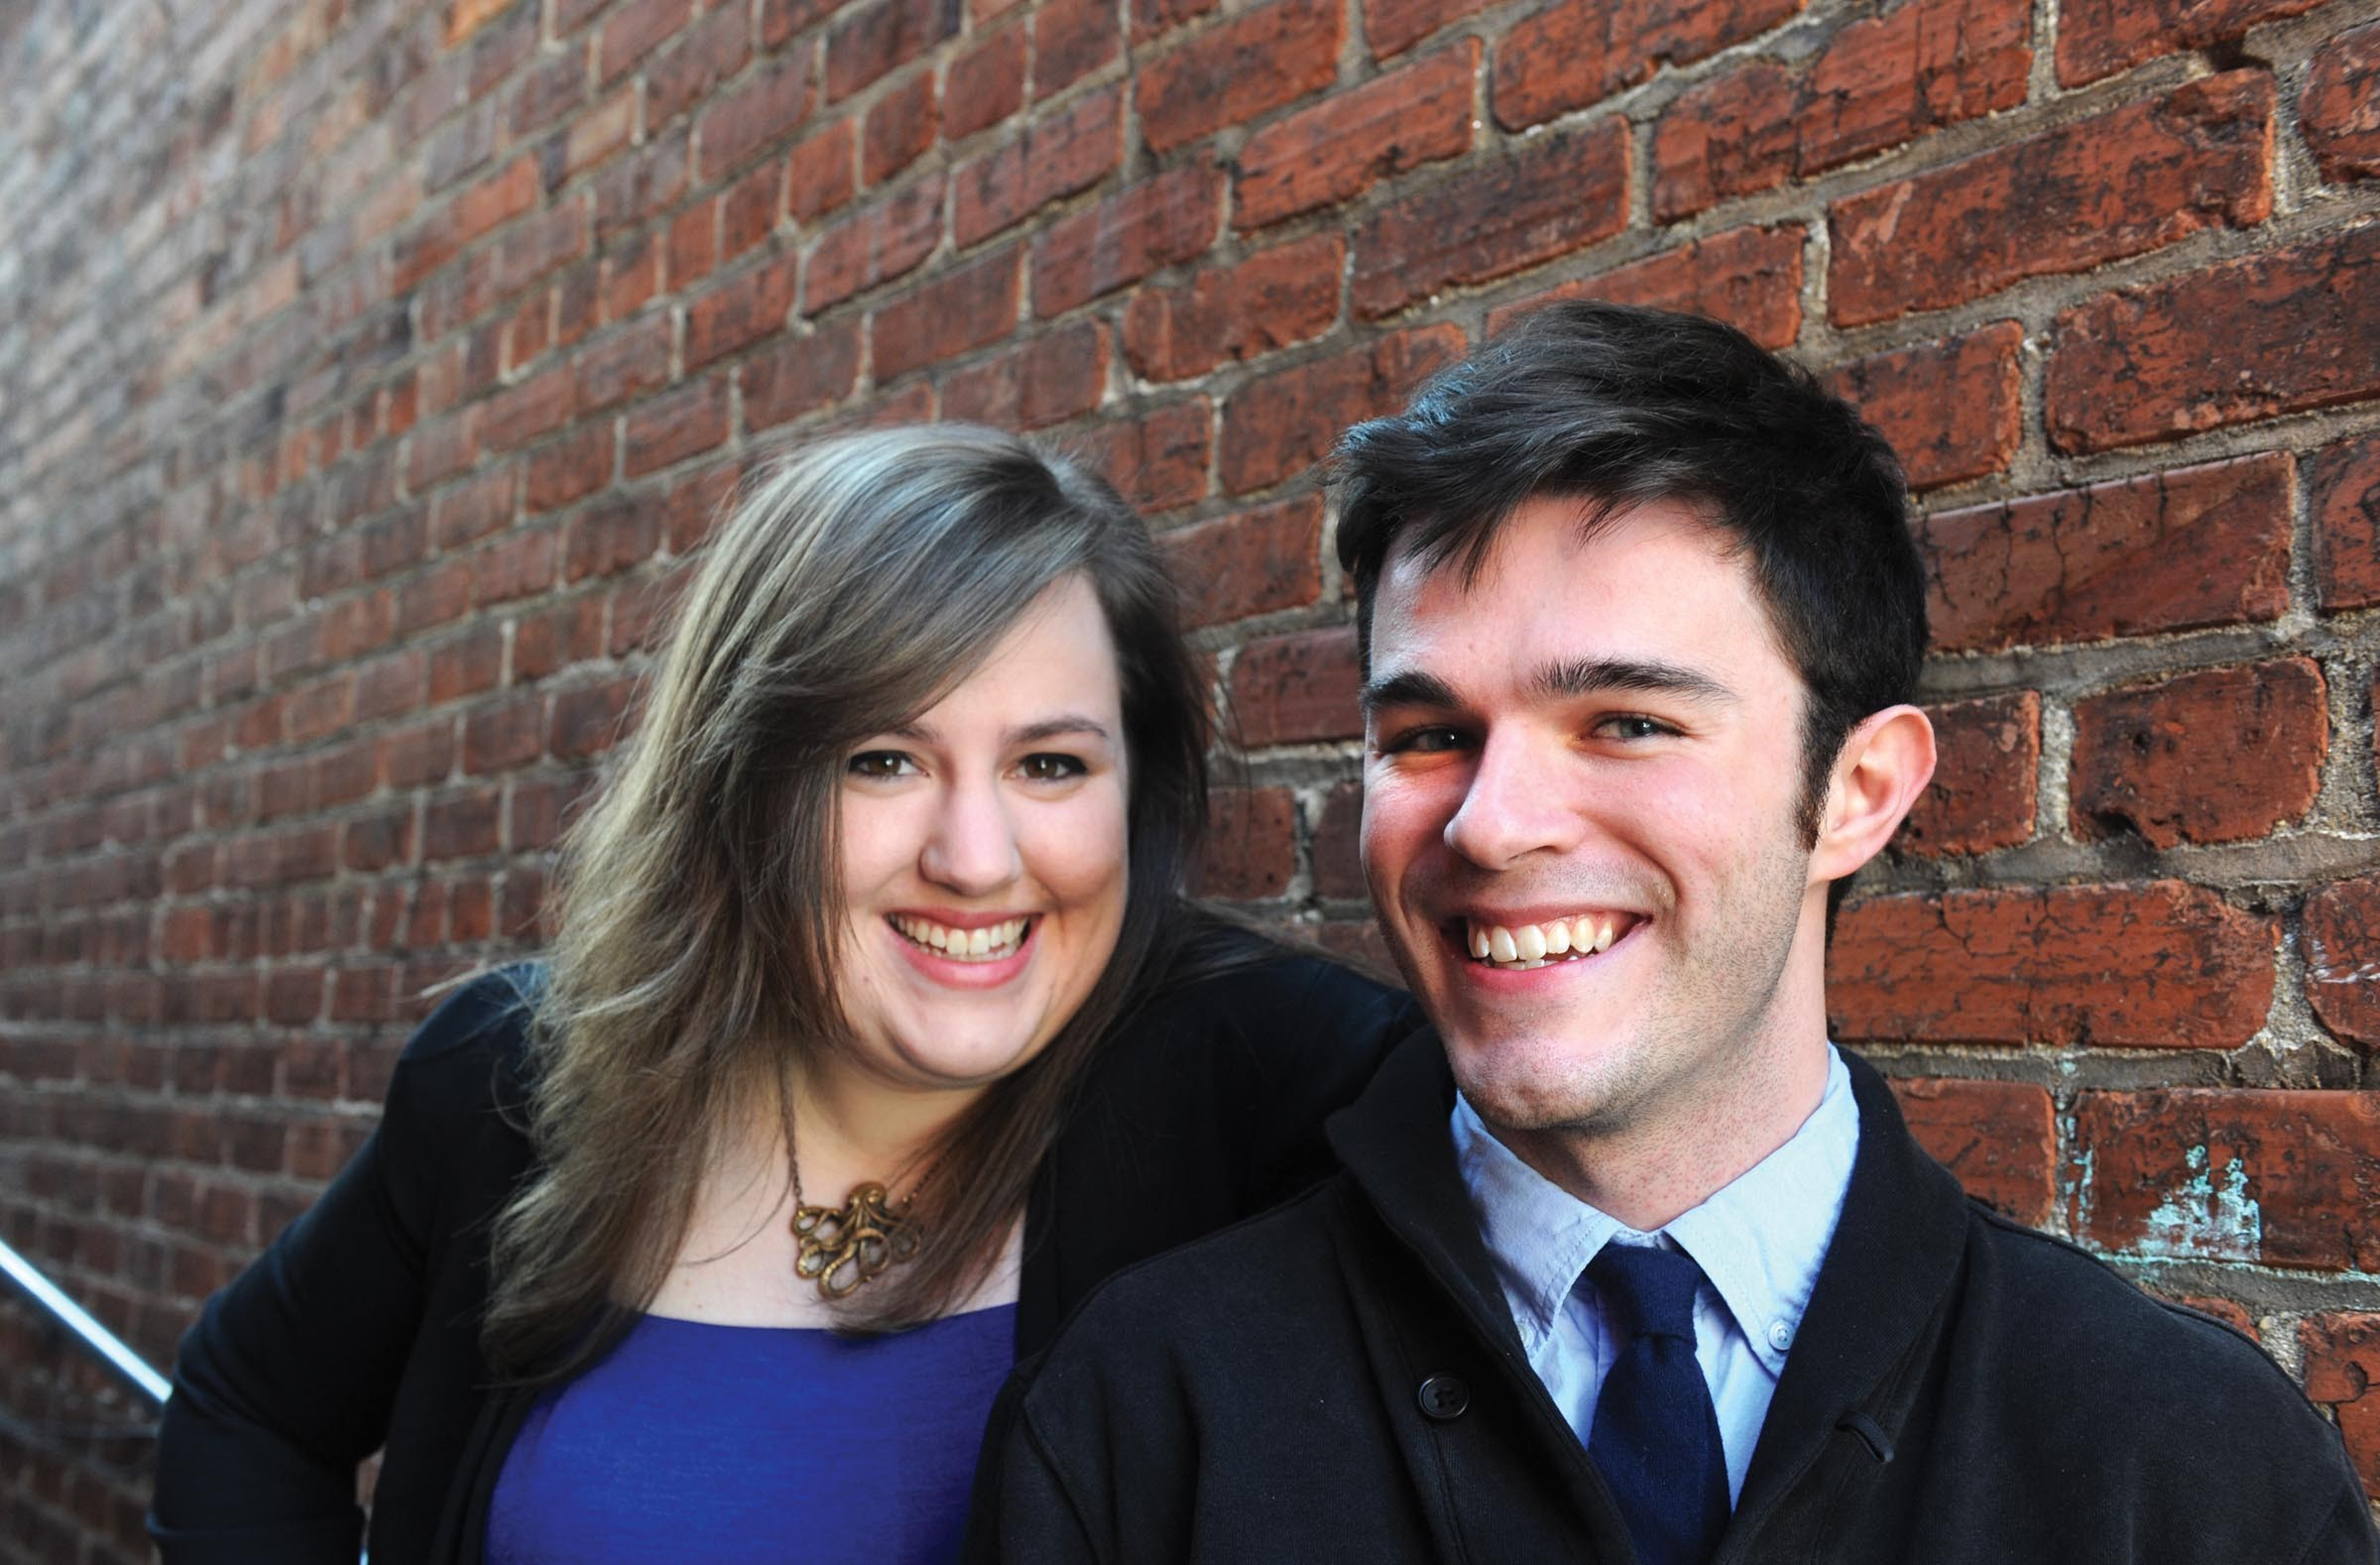 Annie Colpitts and Deejay Gray started TheatreLab to create a helpful resource for local theater companies. - SCOTT ELMQUIST